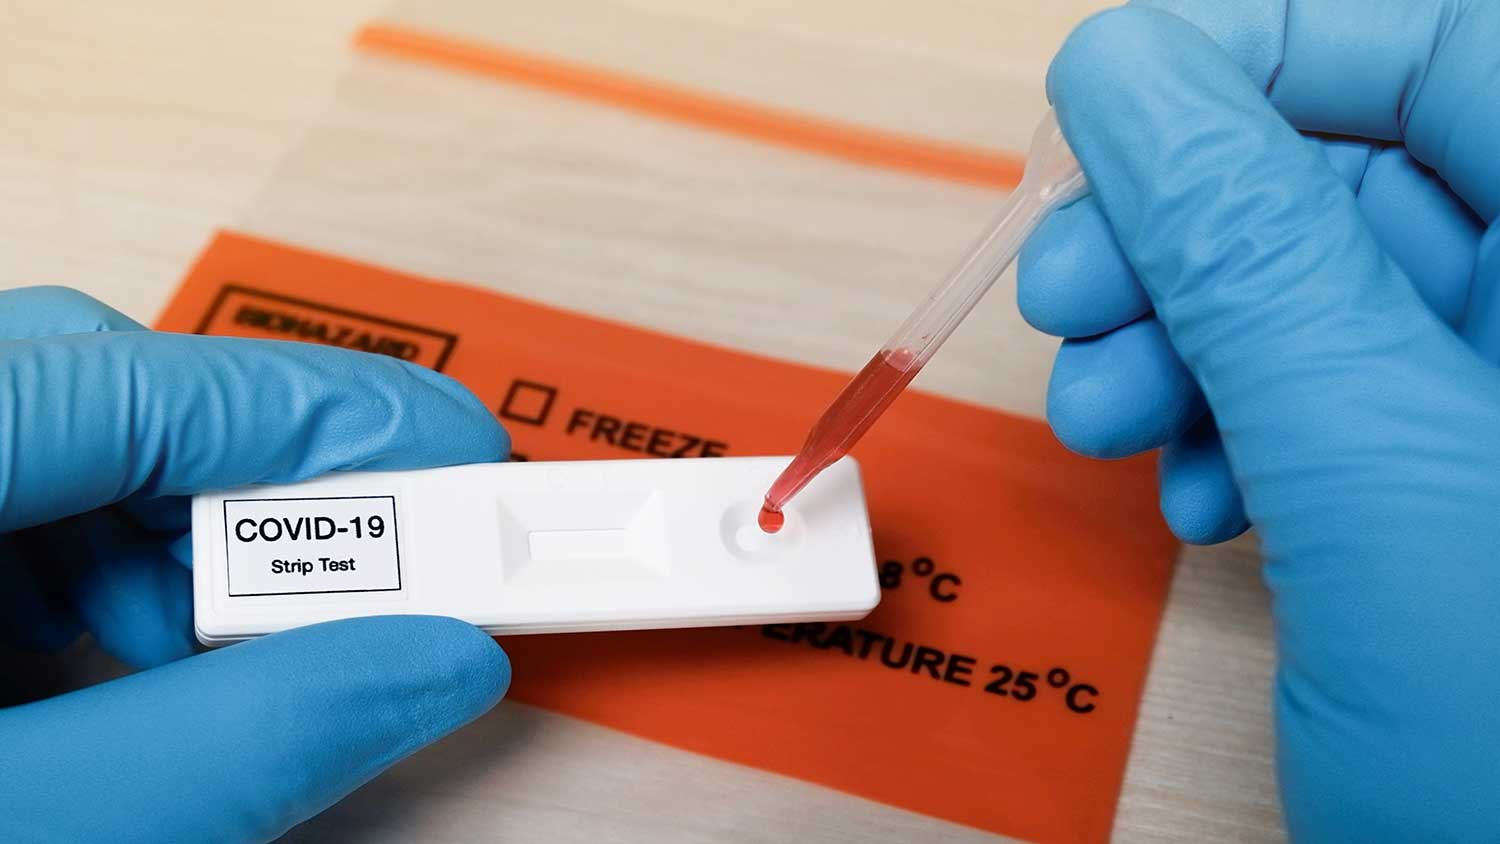 Scientist dropping blood samples onto a test plate labelled COVID-19